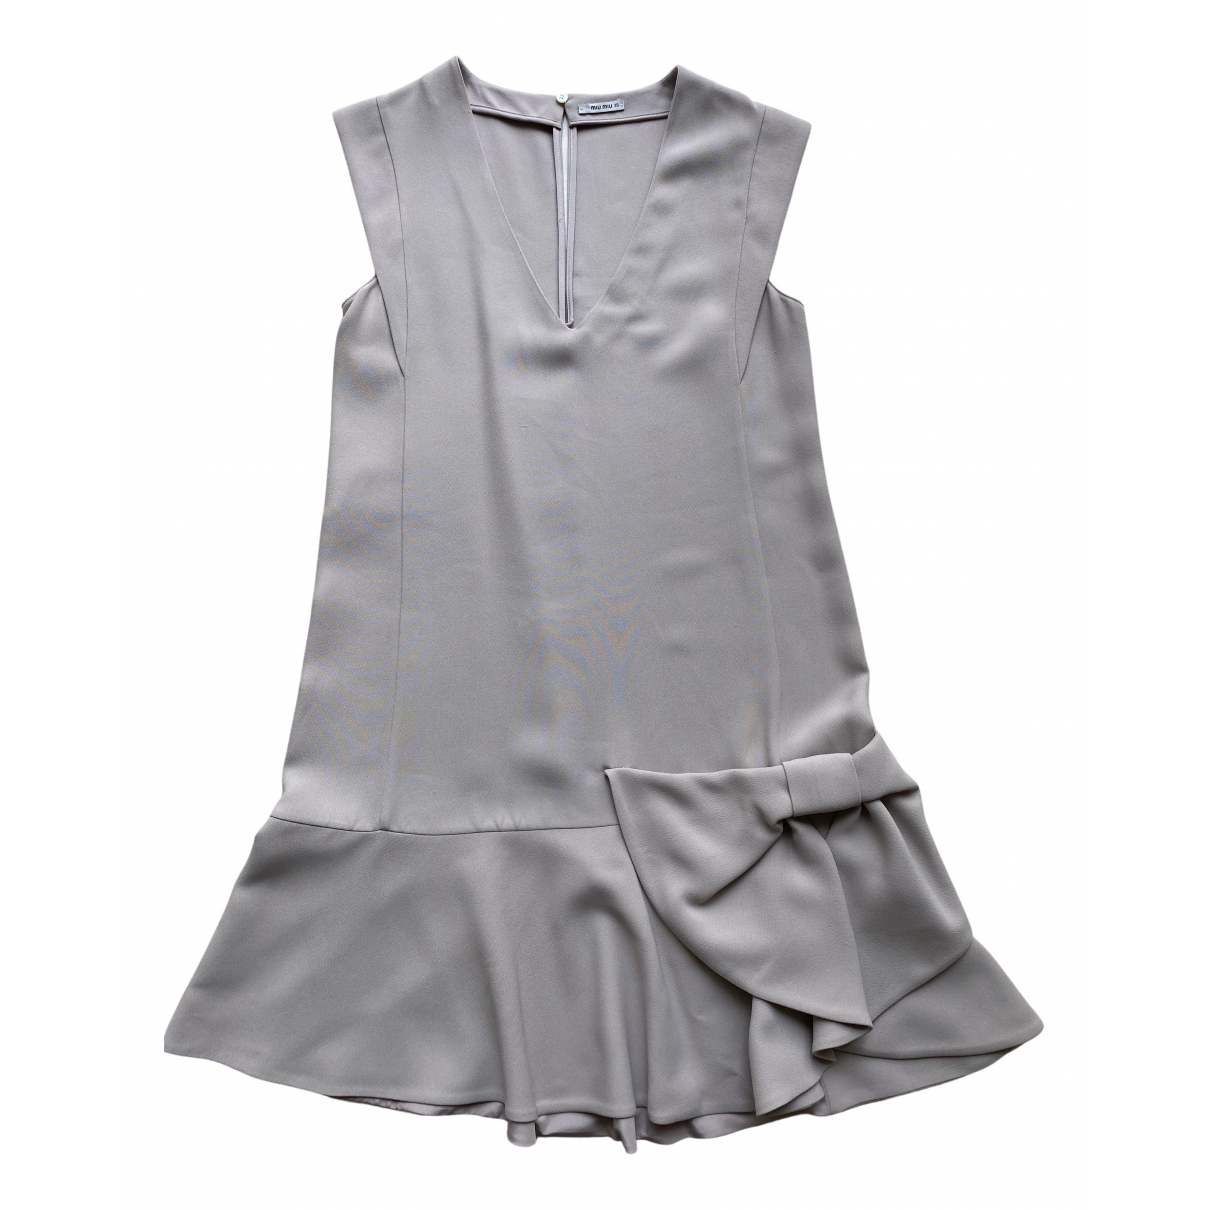 Miu Miu N Beige dress for Women 38 IT